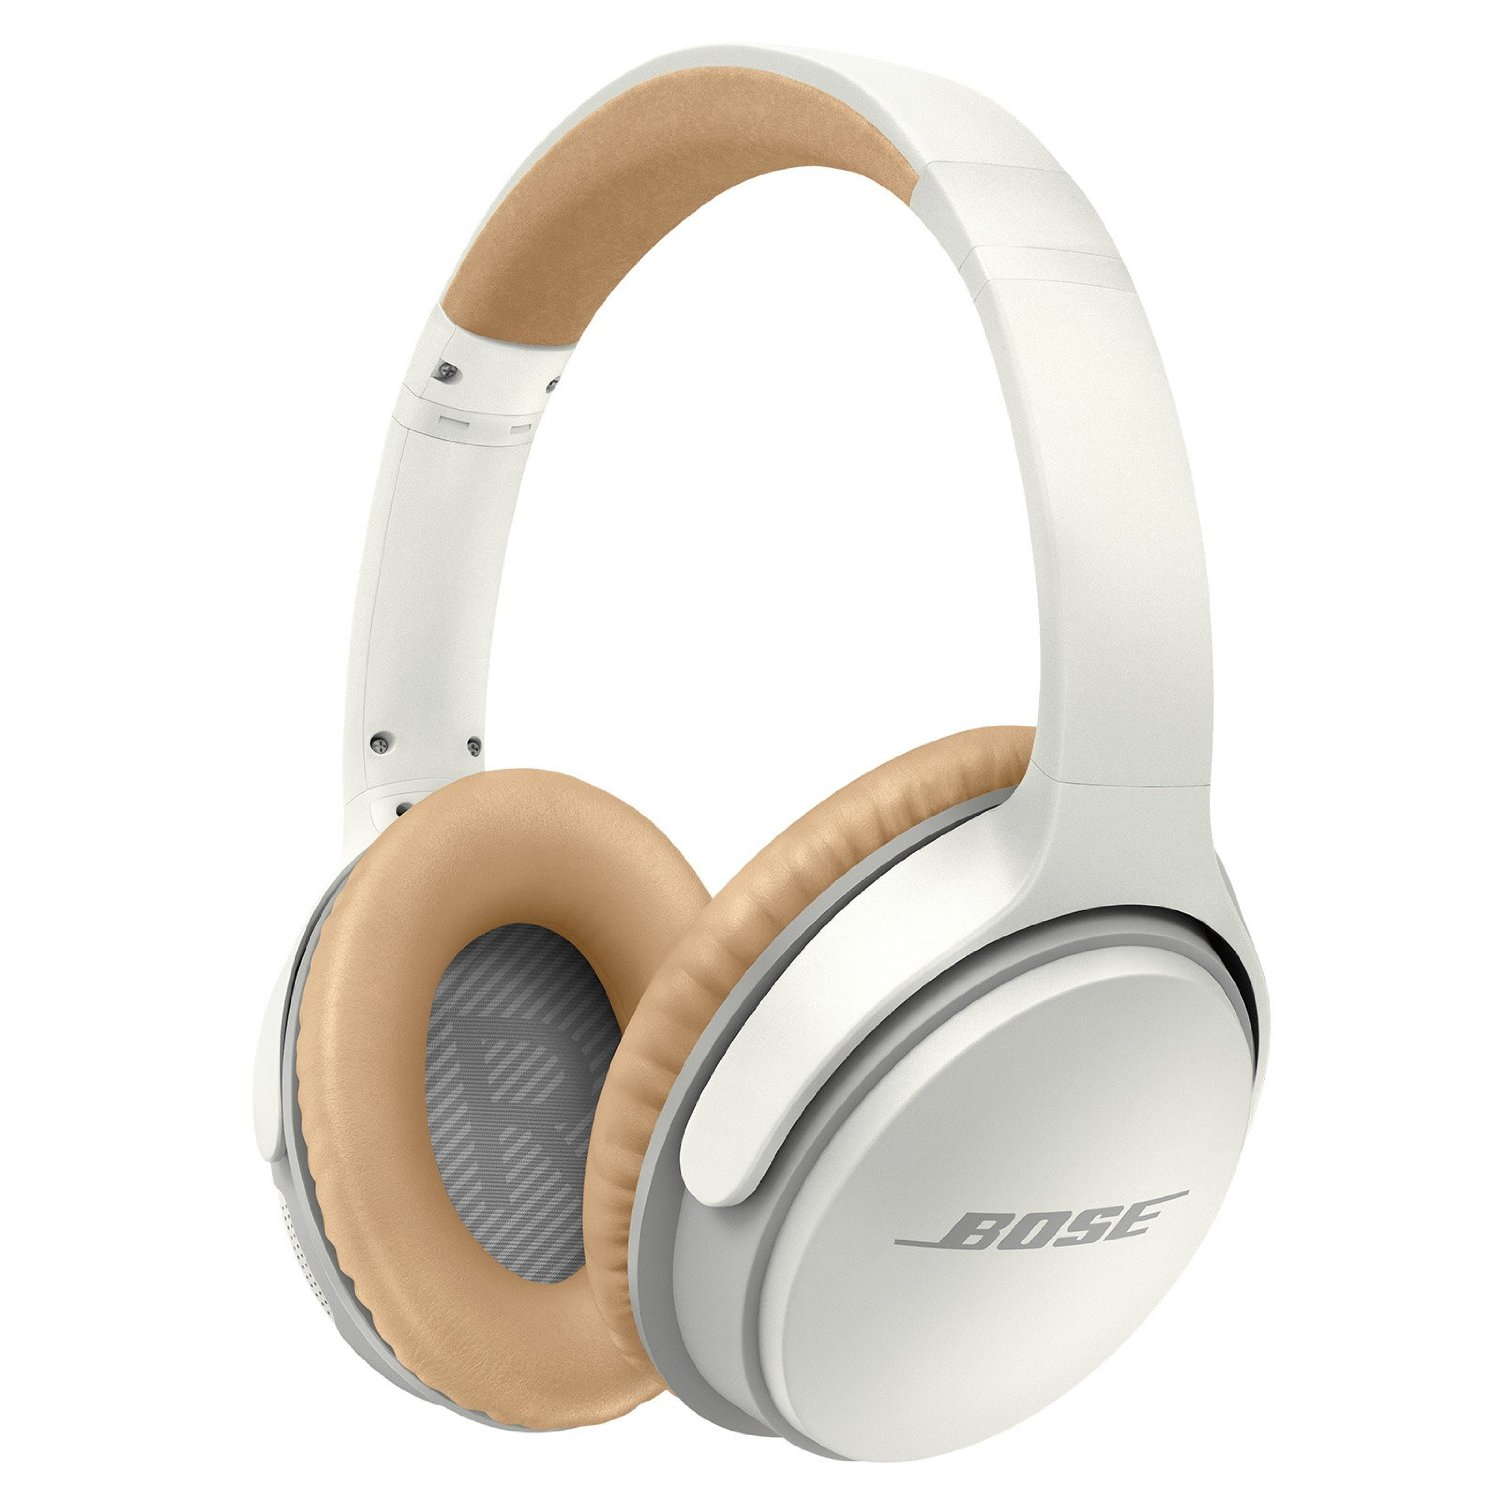 Bose SoundLink AE Wireless II